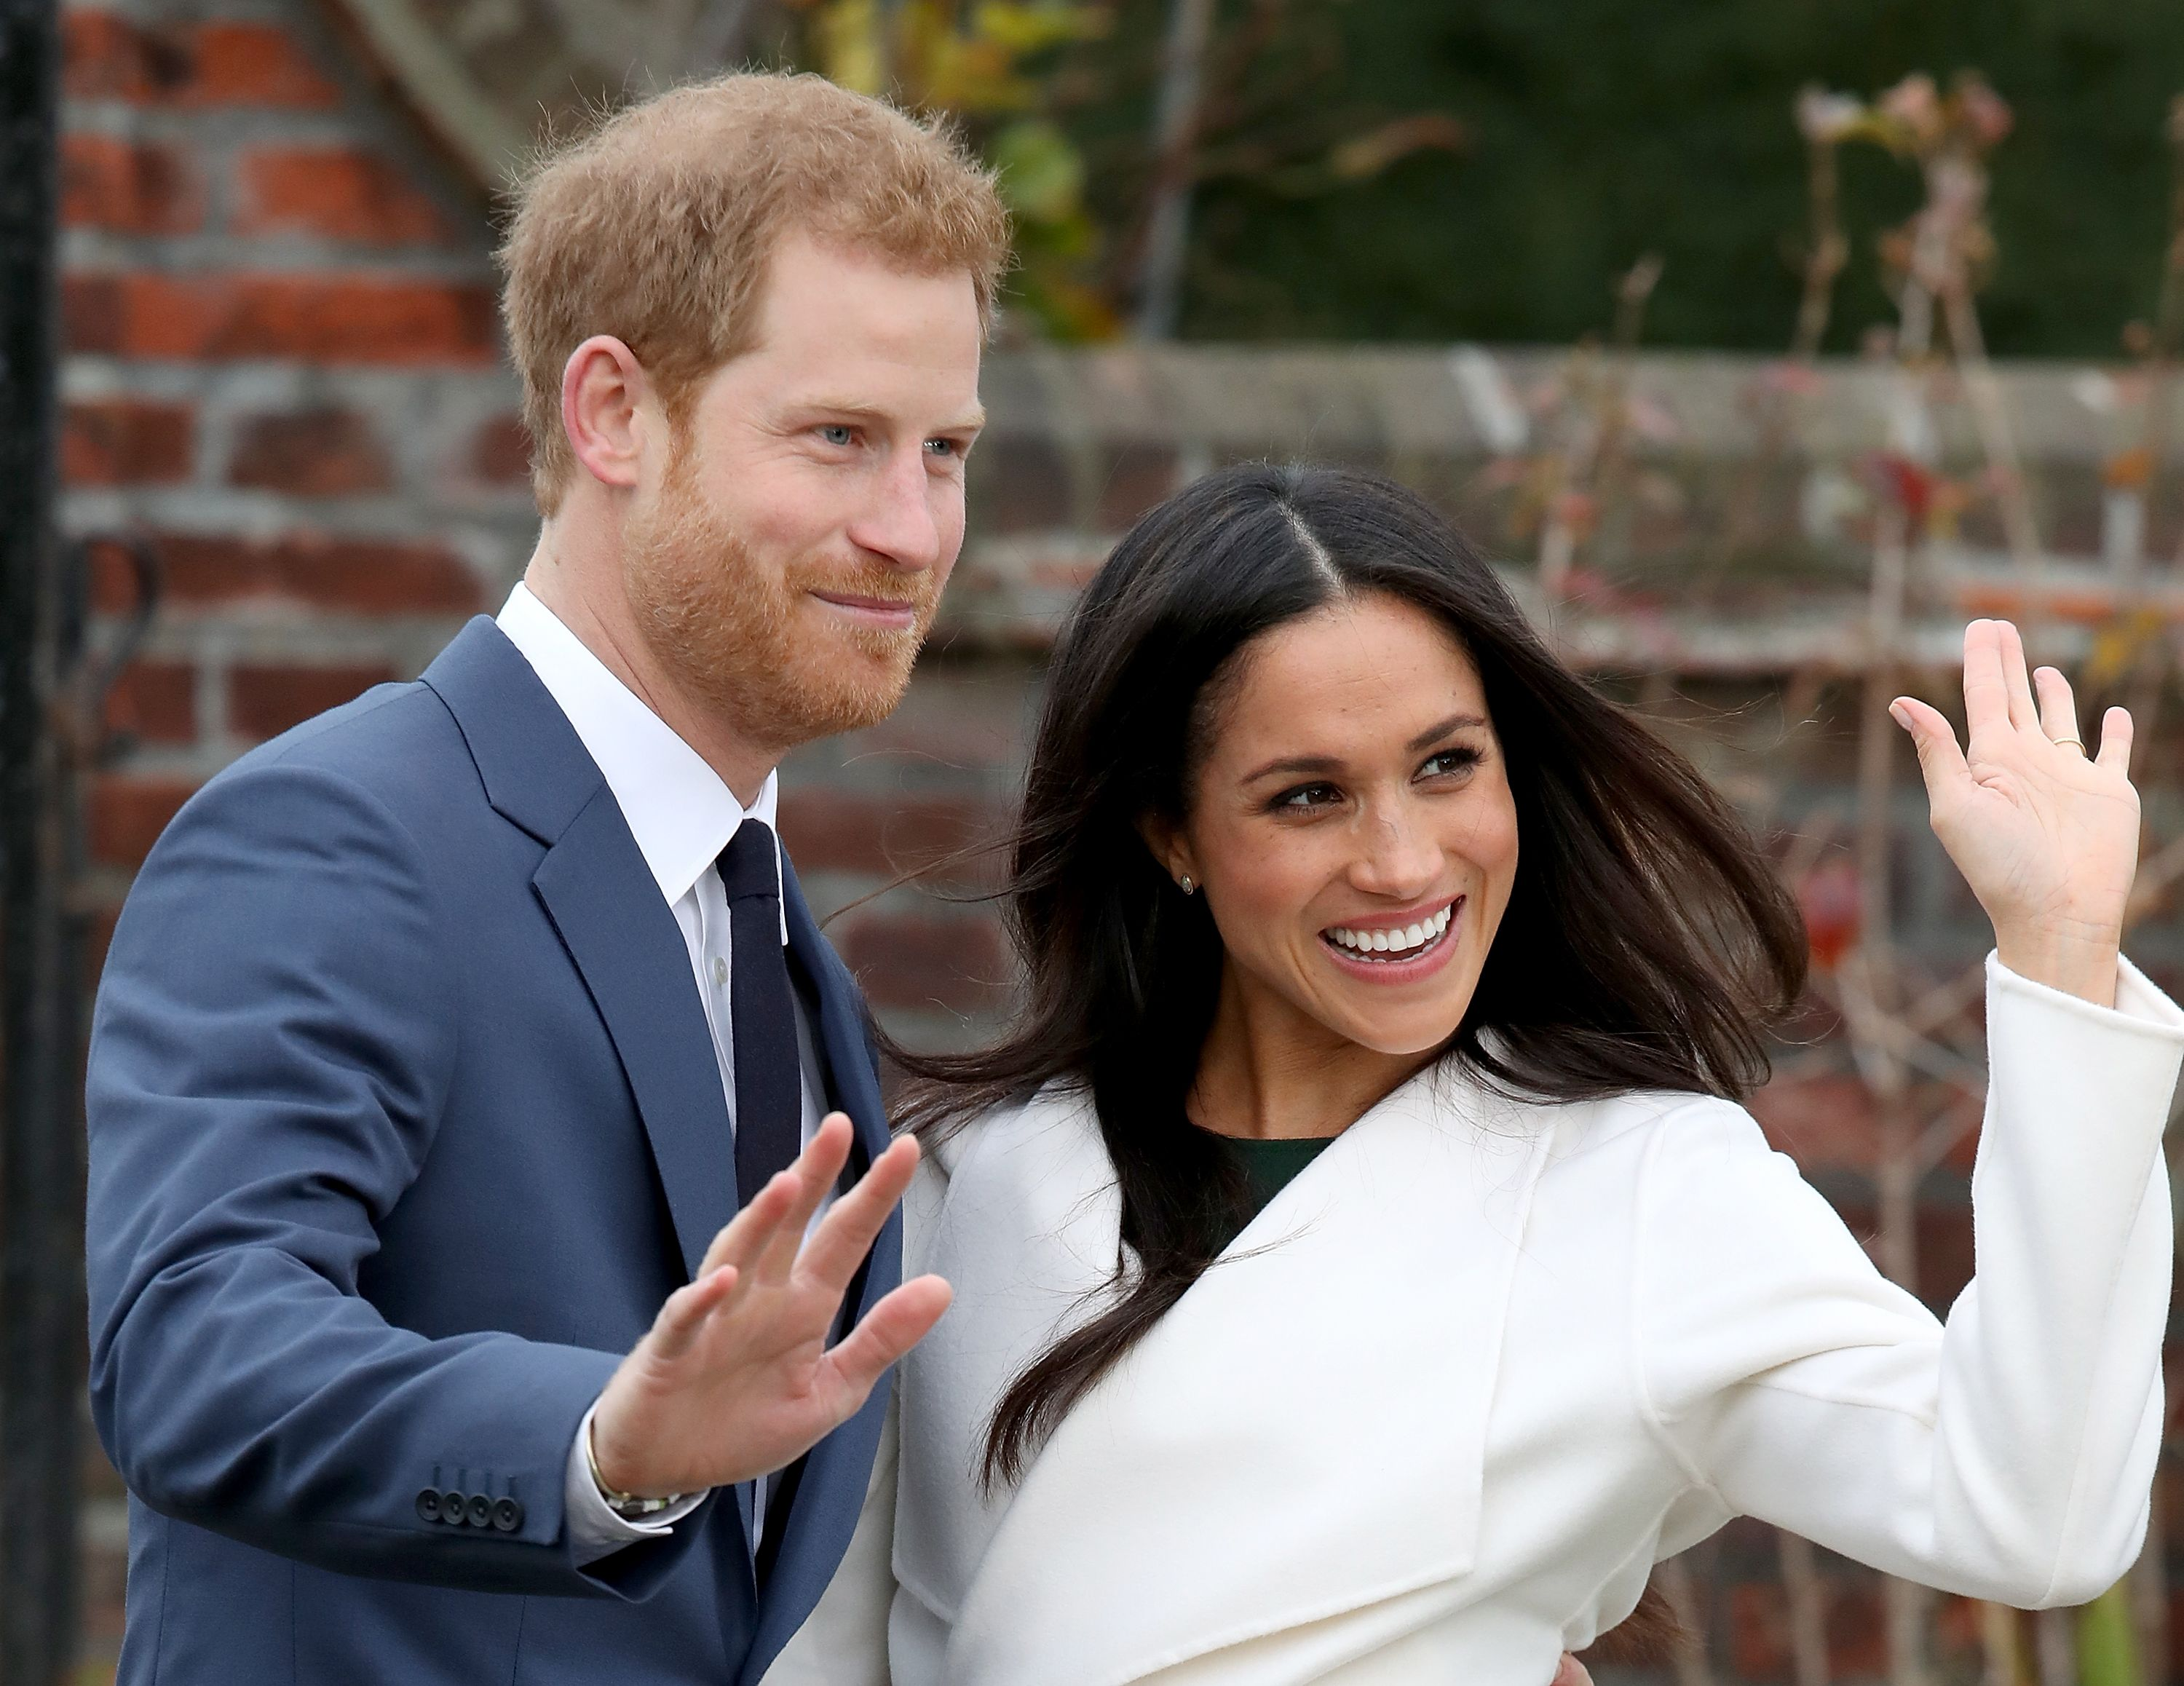 Prince Harry and Meghan Markle remain friendly to media / Getty Images